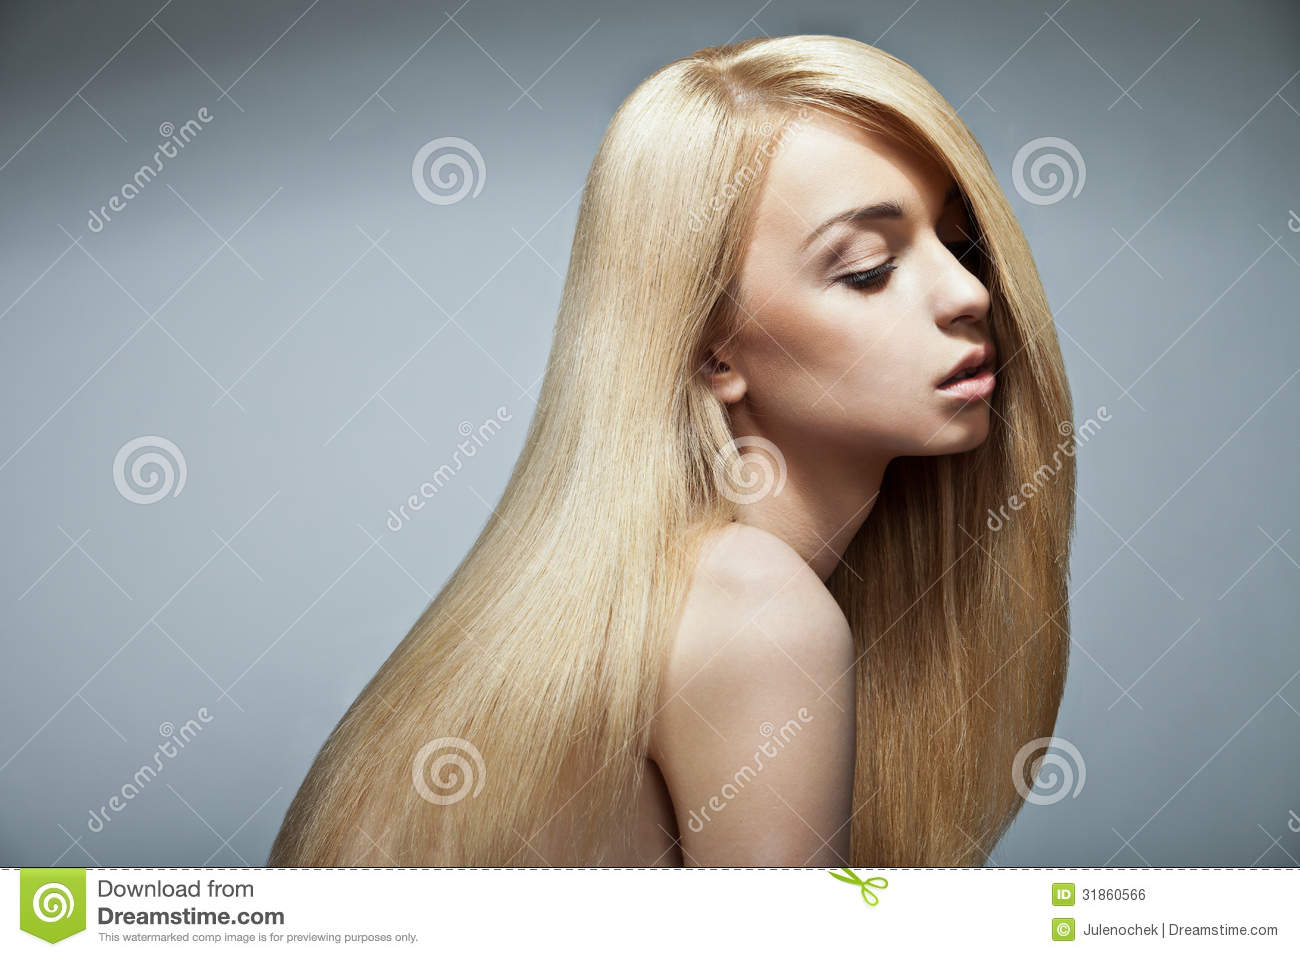 how to make hair shiny and straight naturally